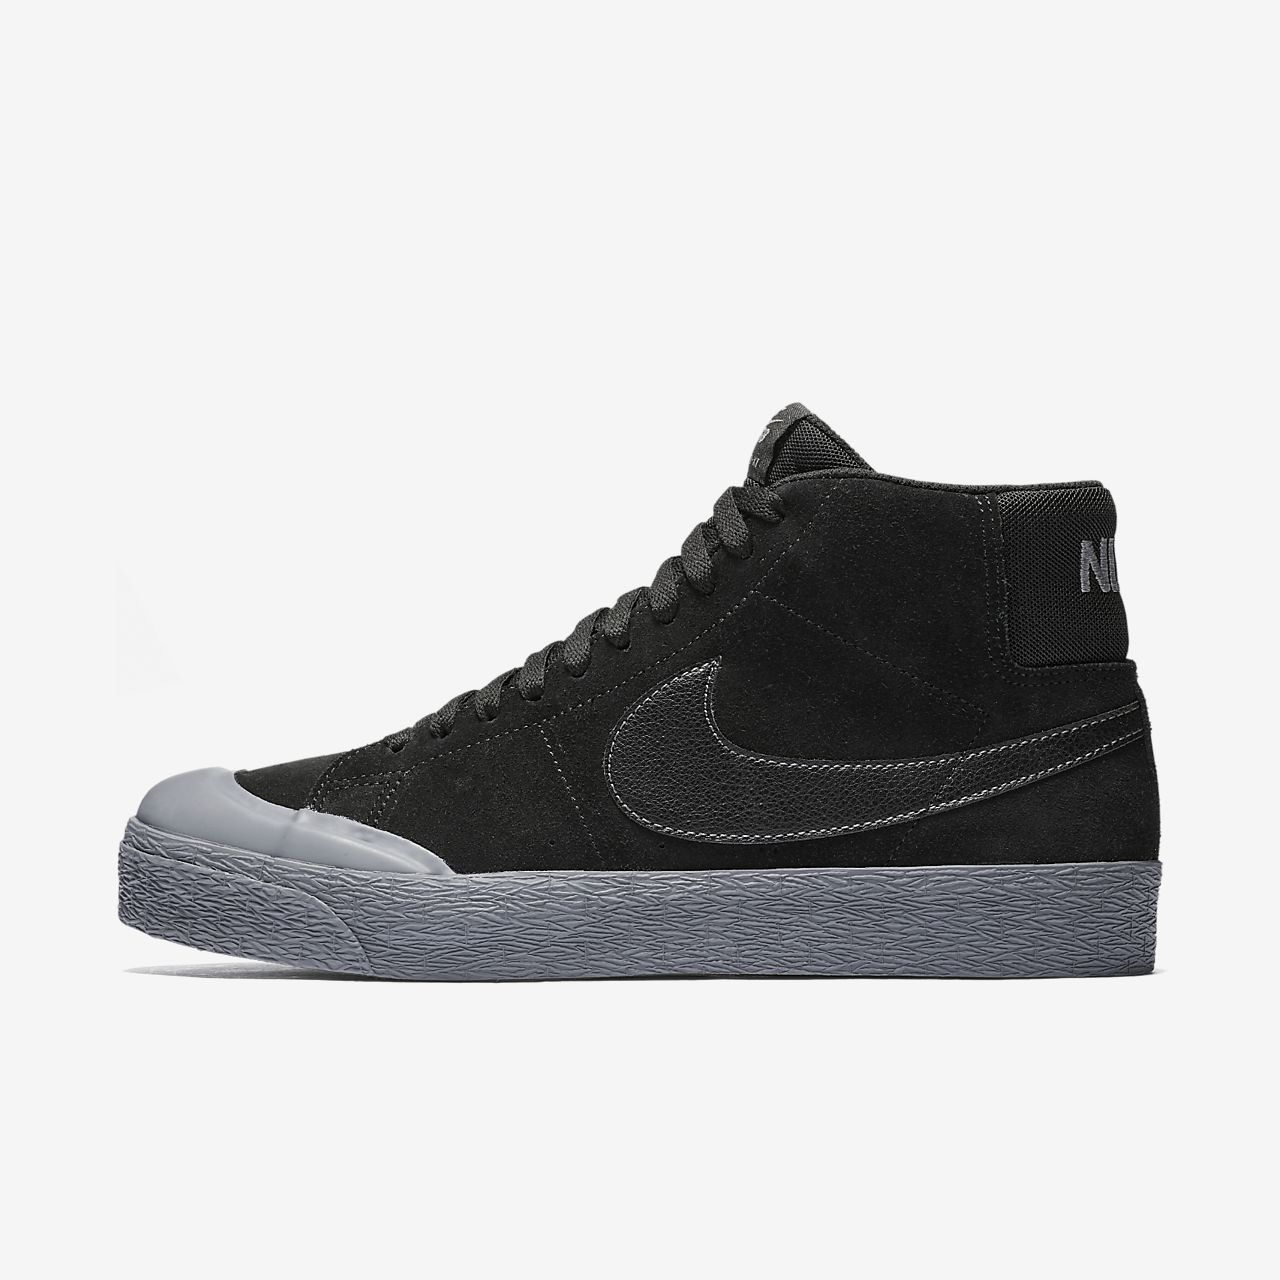 nike skateboarding blazer mid lr shoes for kids